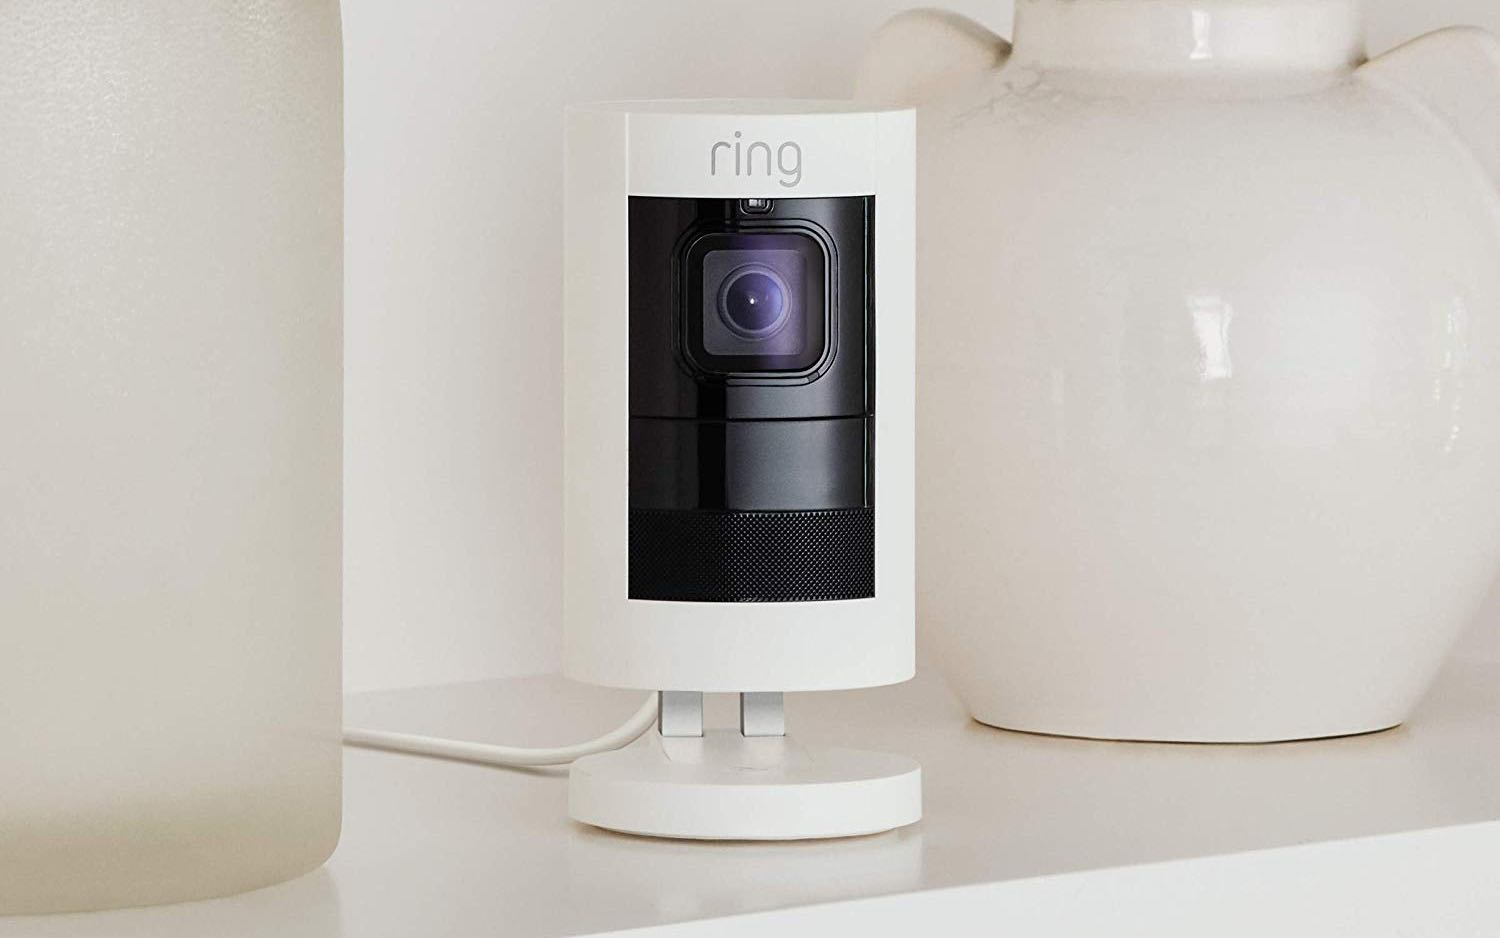 hight resolution of ring stick up cam wired review social networking meets security camera